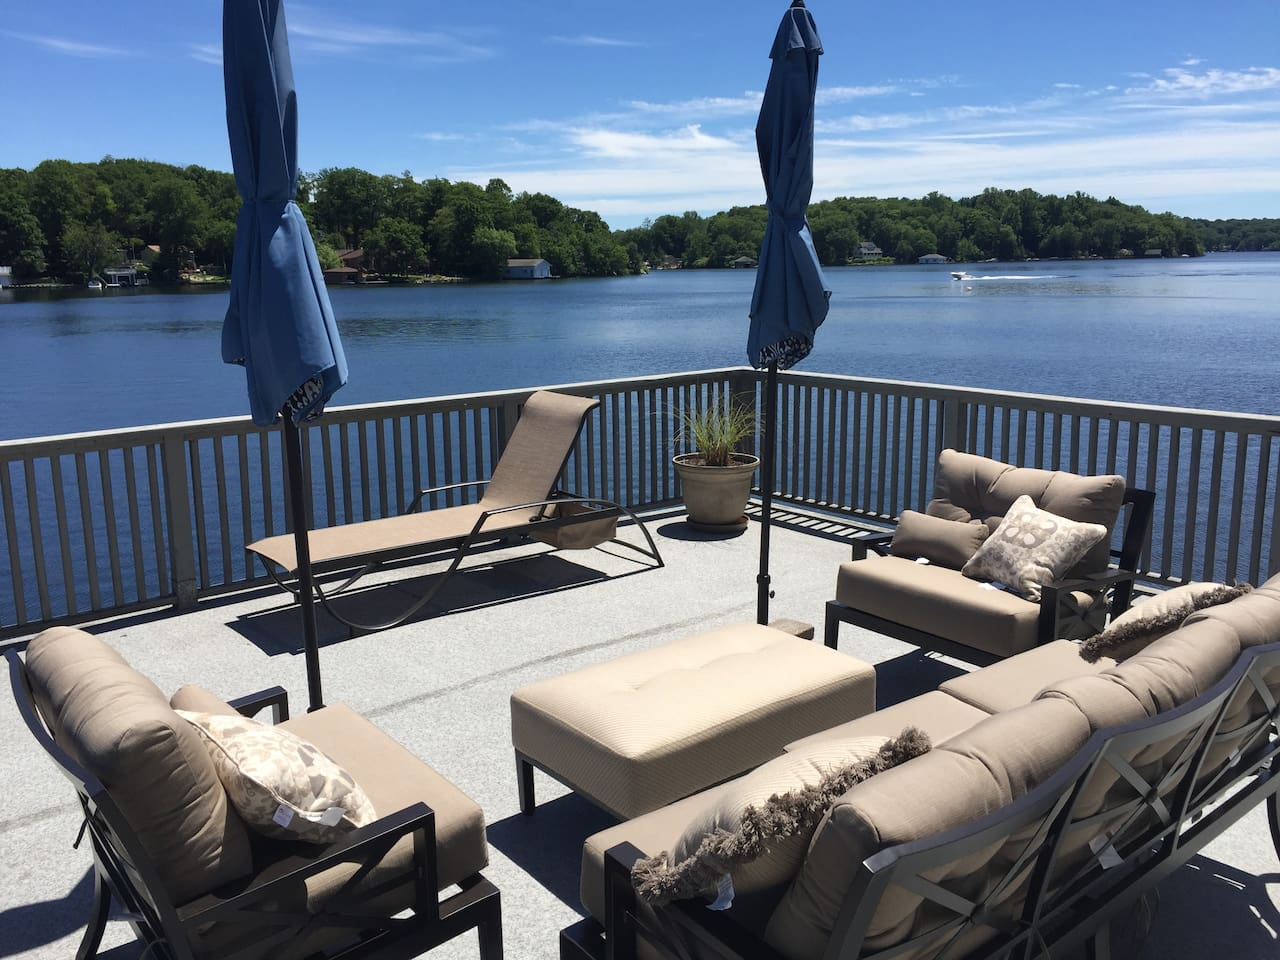 The Boathouse Deck makes you feel like you are floating on the lake.  Comfy outdoor furniture, sun umbrellas and lounge chairs help you enjoy sunshine from early morning until late afternoon.